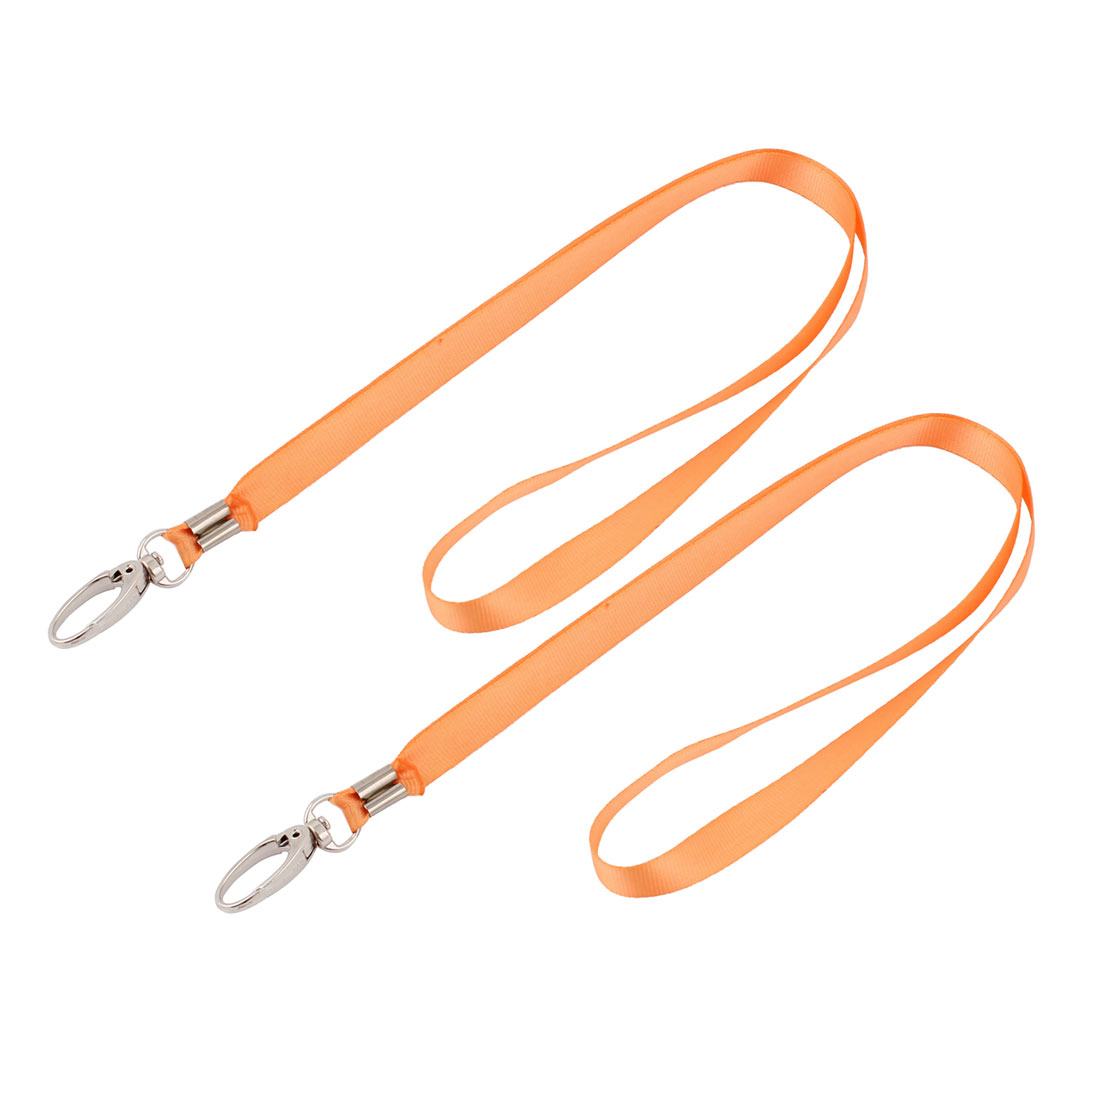 2pcs Metal Clip Orange Nylon Badge Card Name Tag Pouch Hanging Strap Neck String 75cm 2.5ft Long